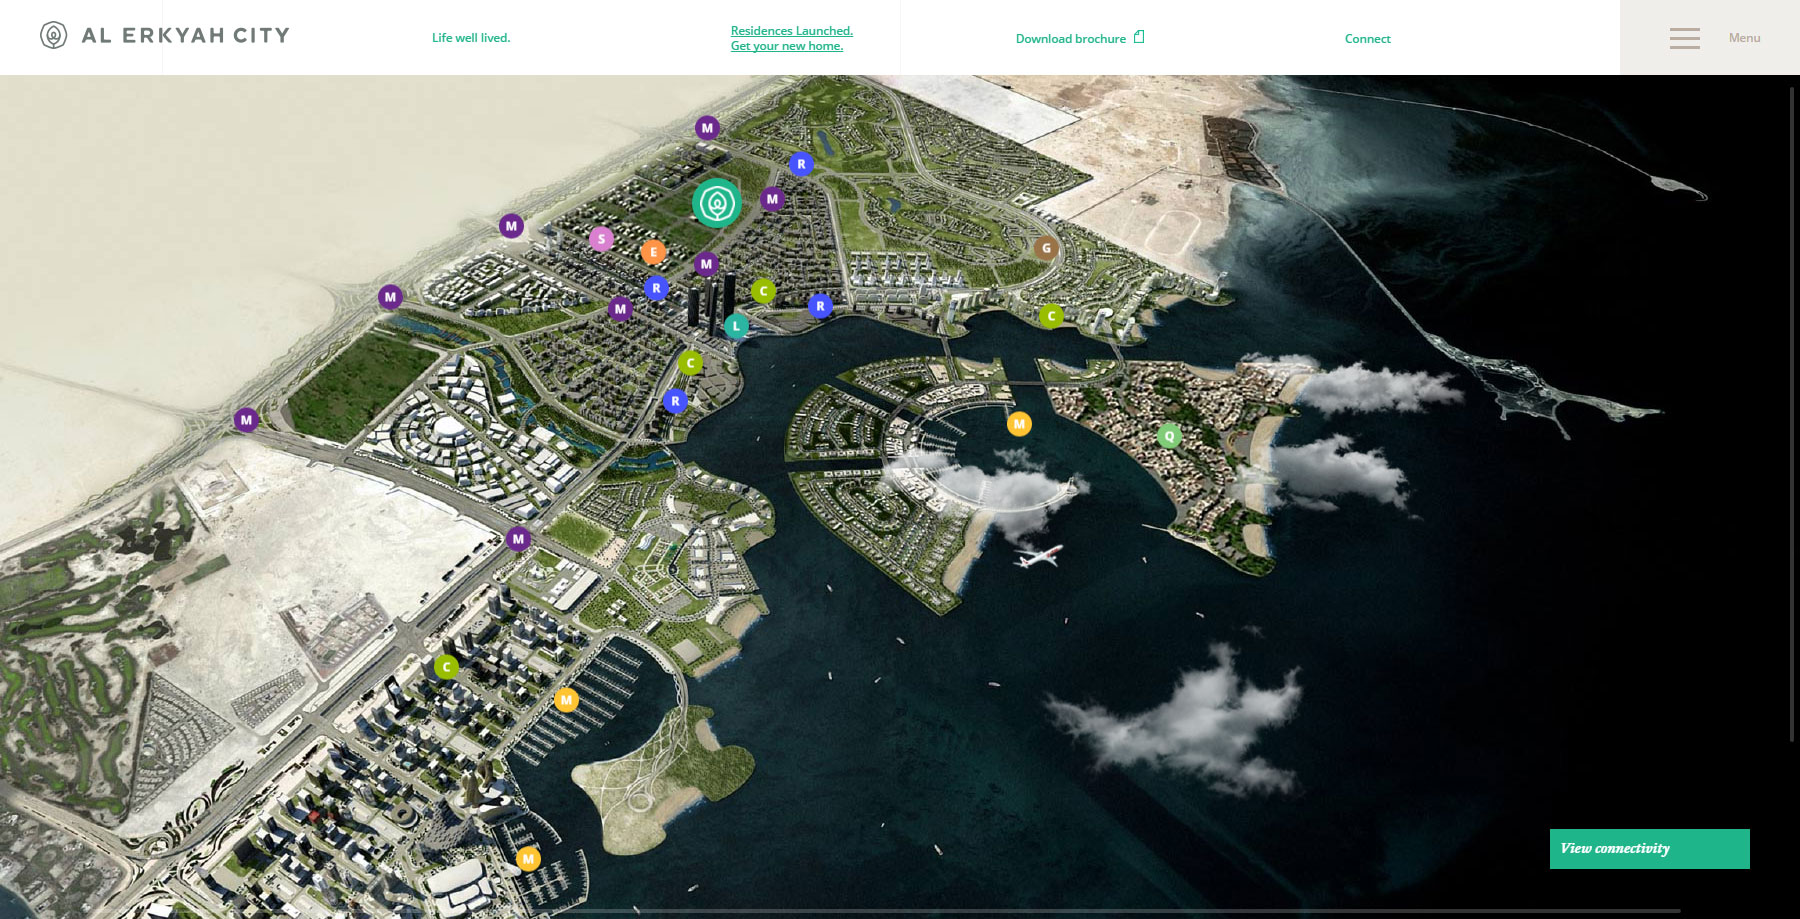 Al Erkyah City - Life well lived. - Website of the Day